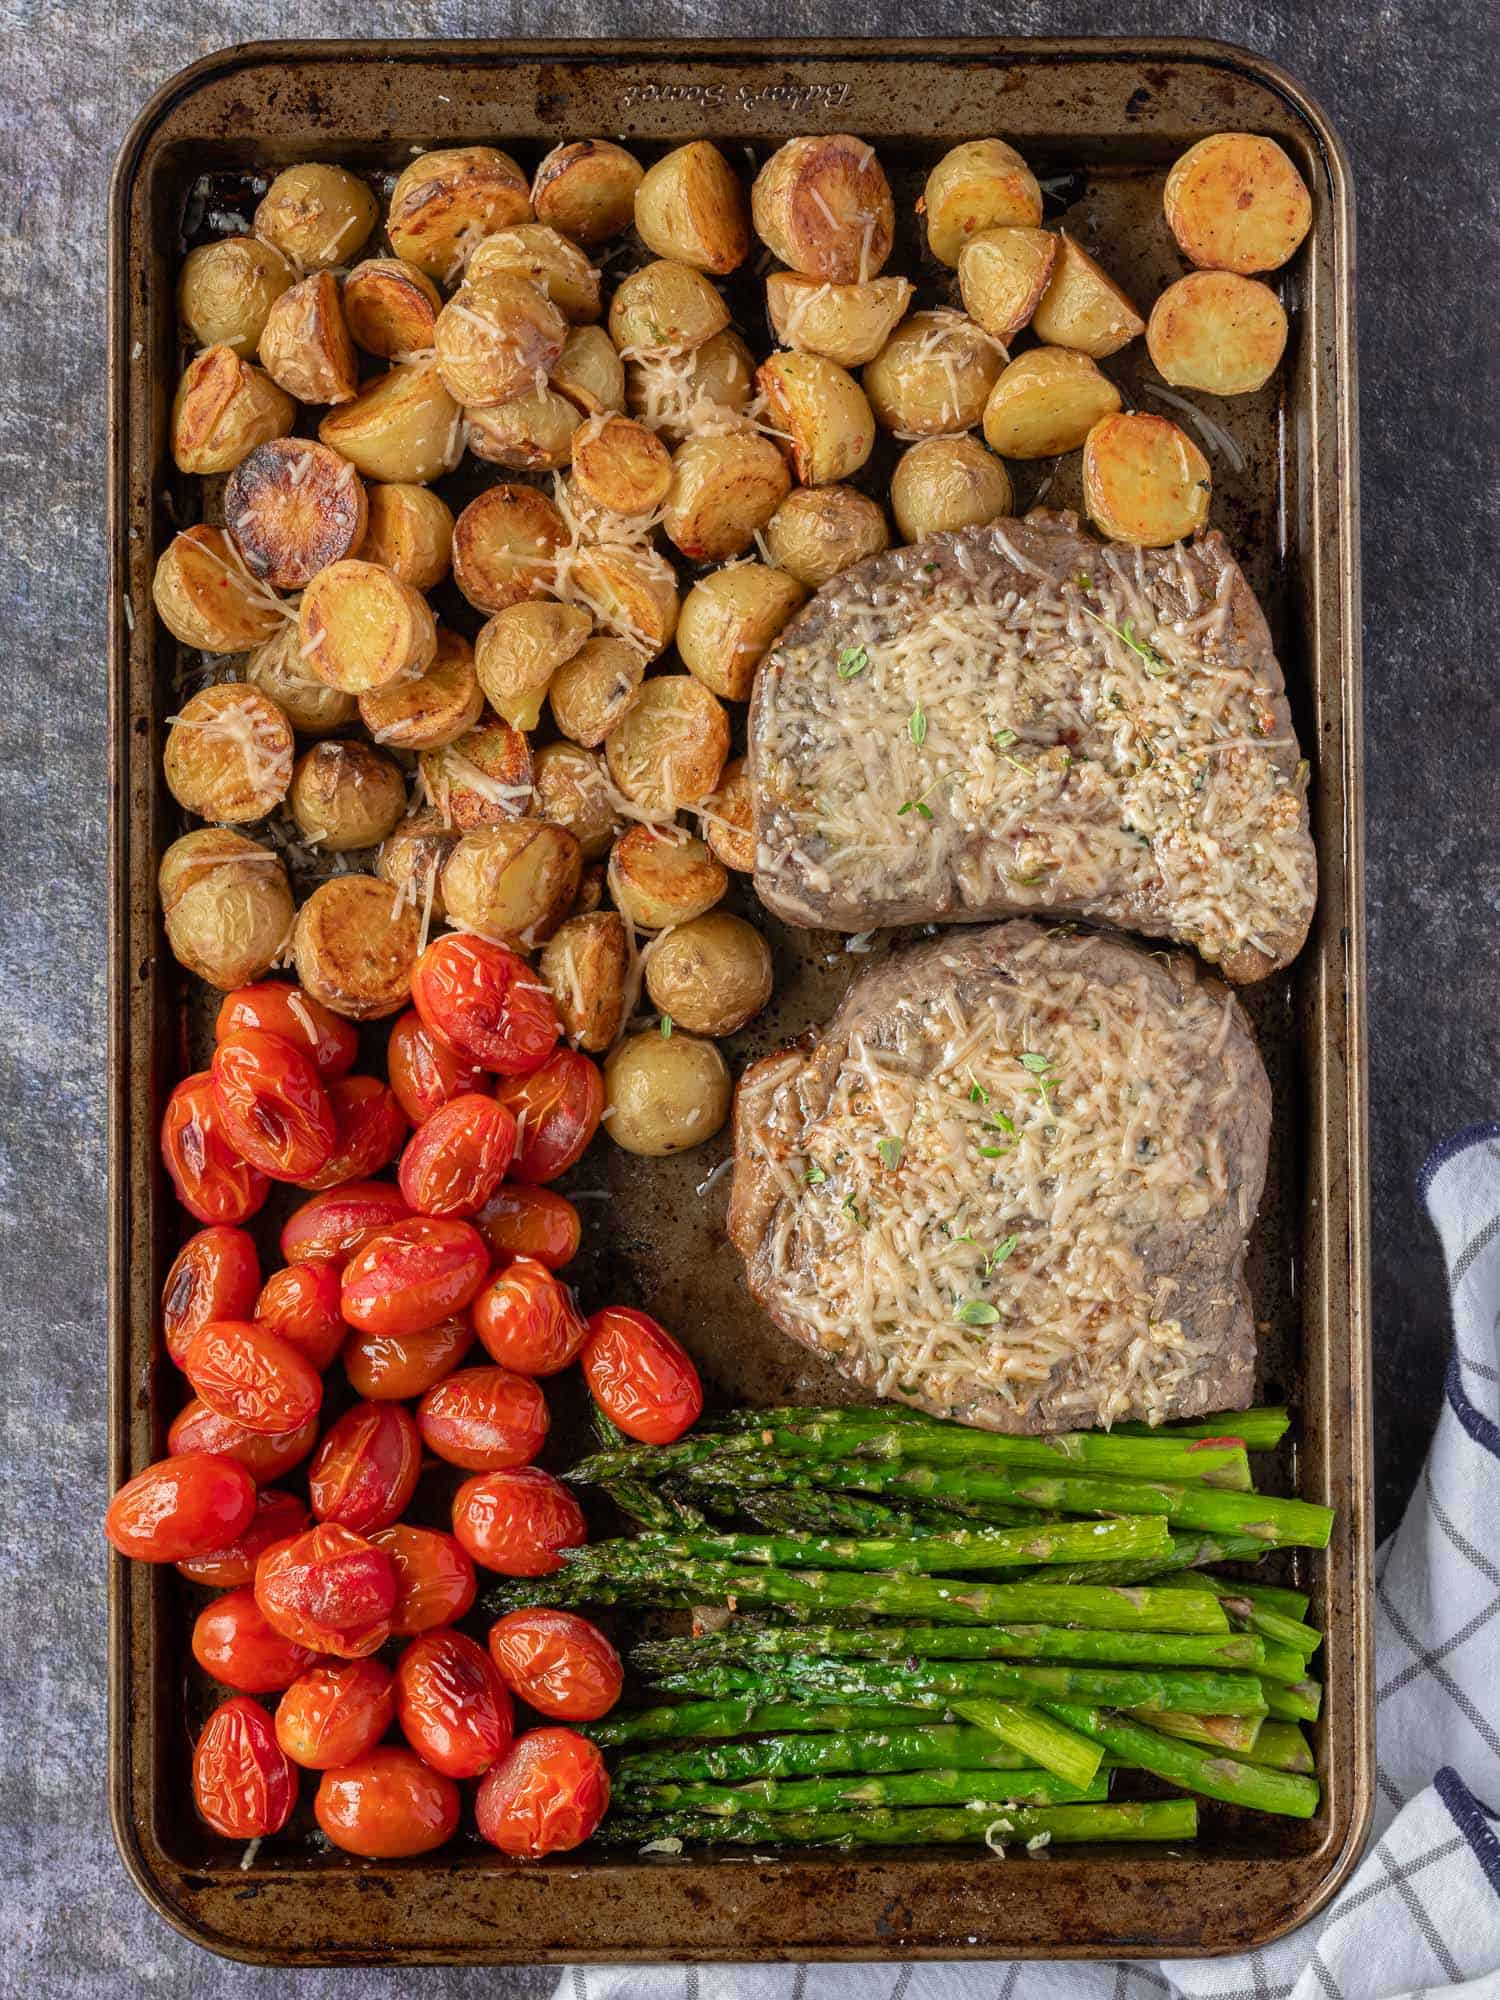 Cooked steak and vegetables on a large sheet pan.